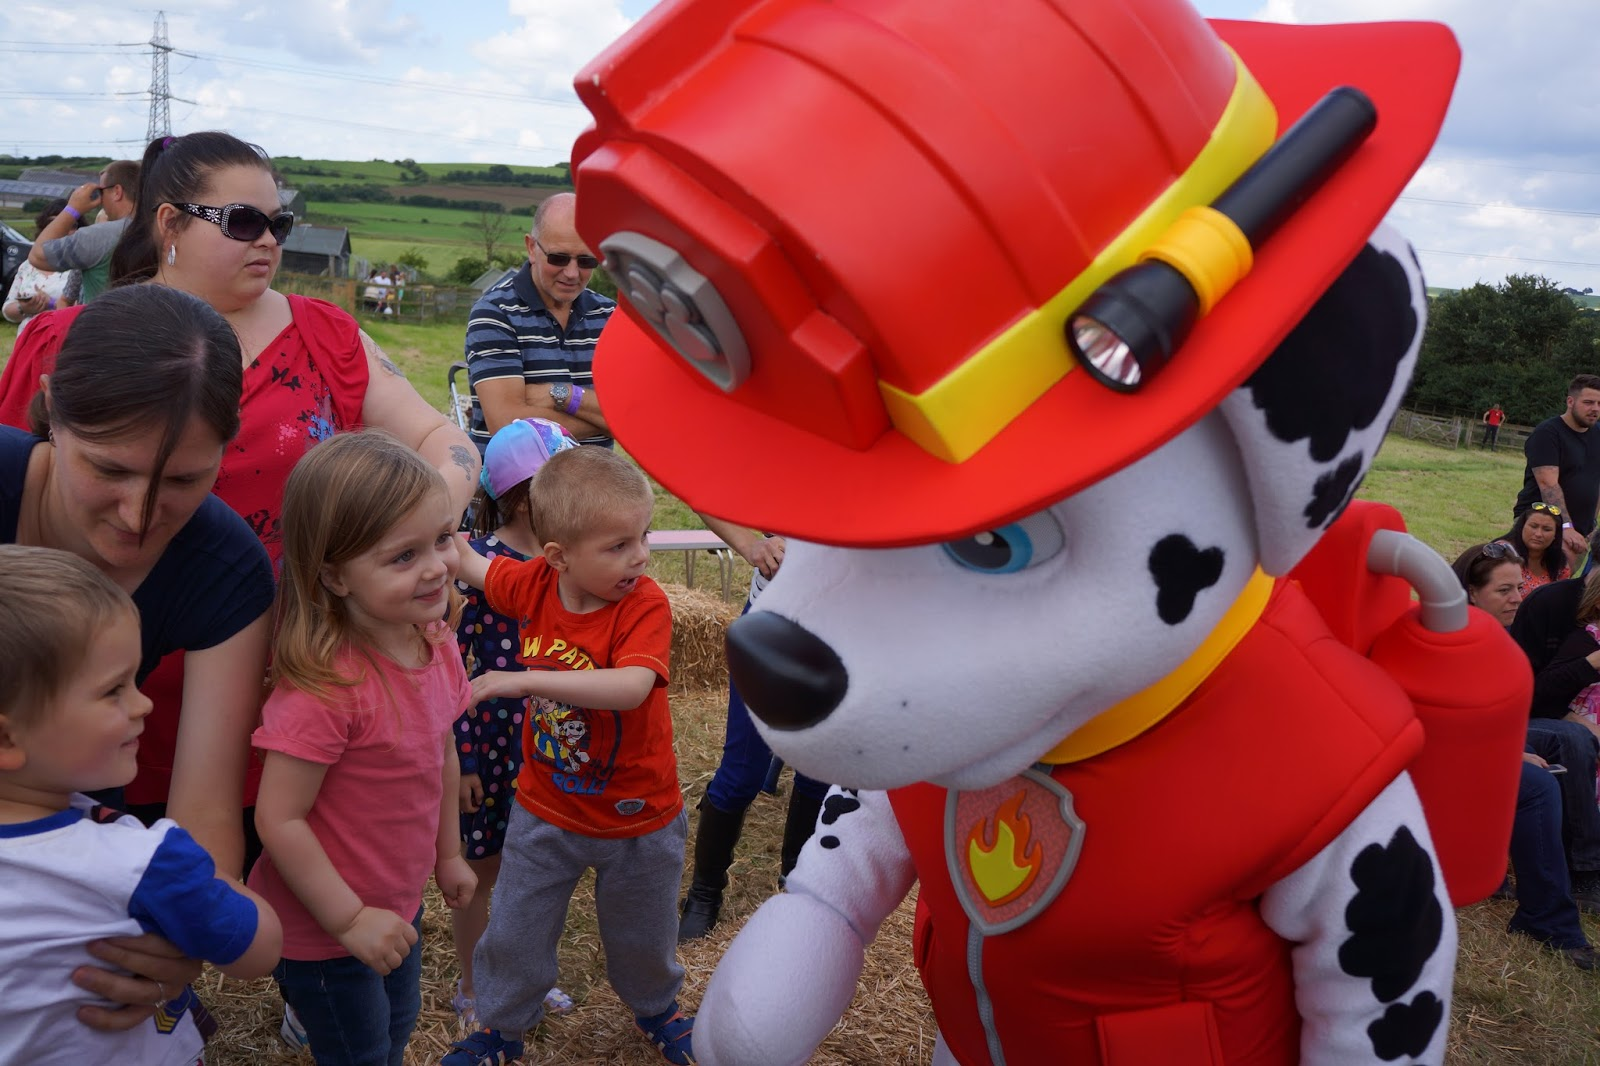 meeting marshall from paw patrol at an event